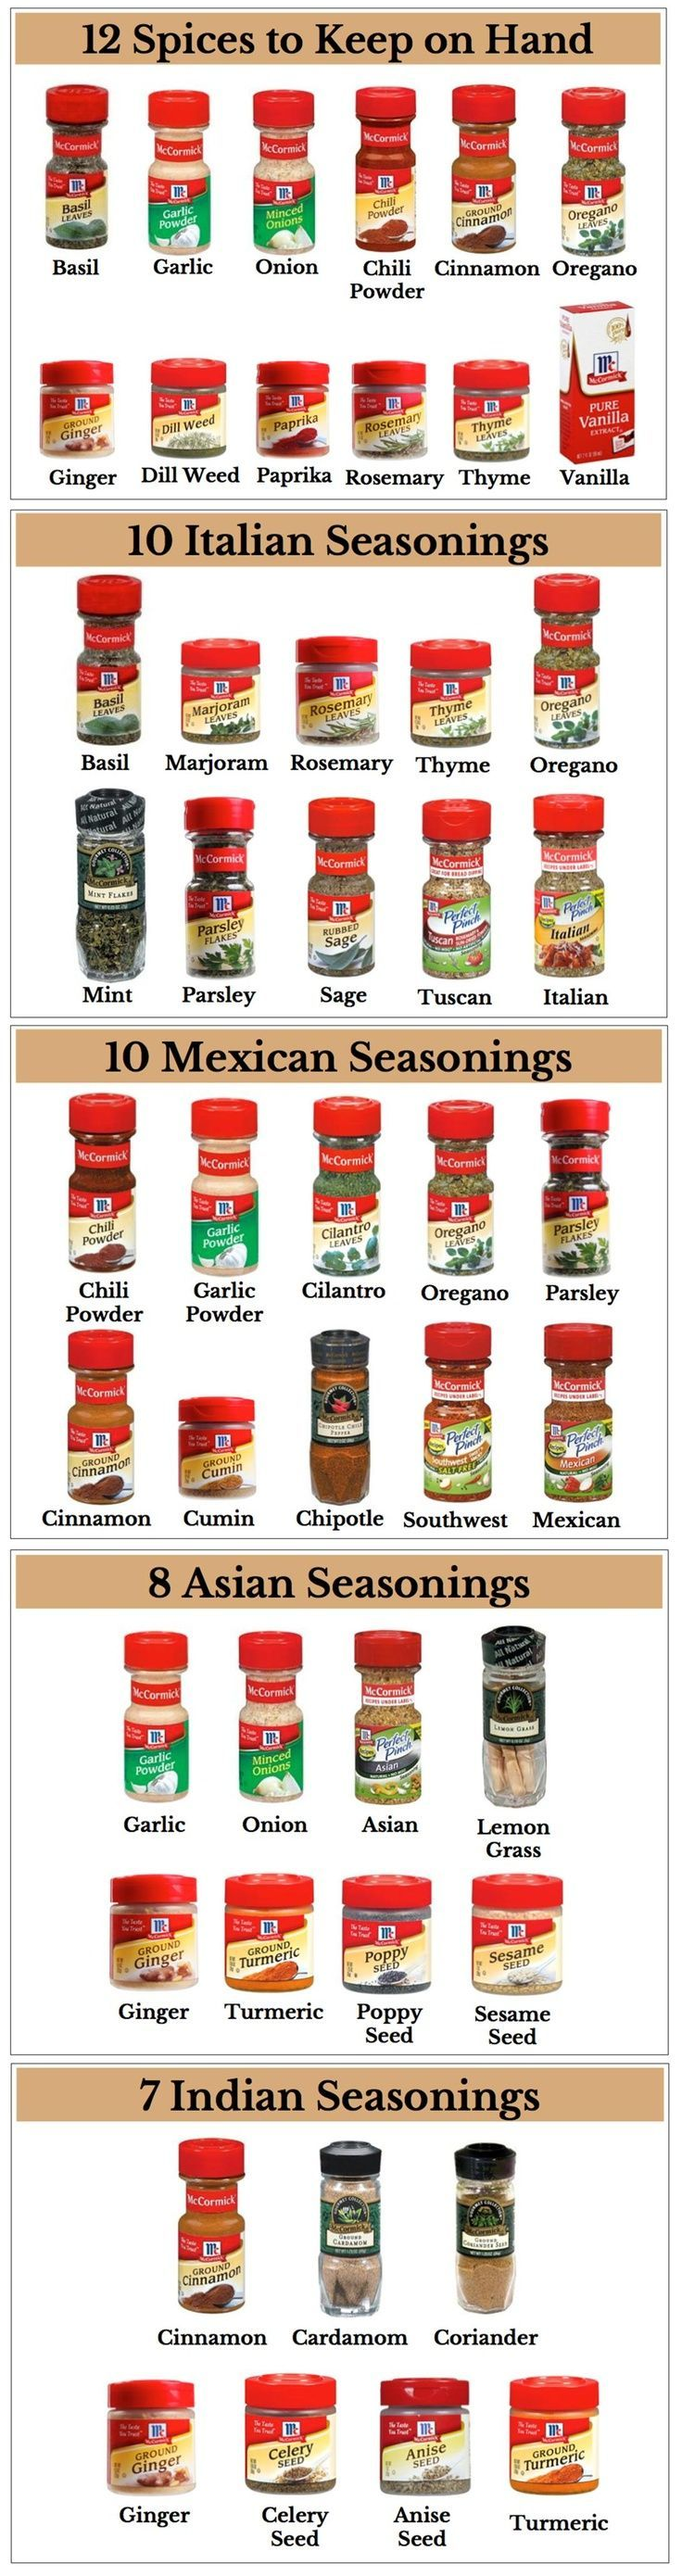 "List of Spices  ""Seasoning is a great way to add taste, but no calories. Keep this in mind when cooking on a diet!"""